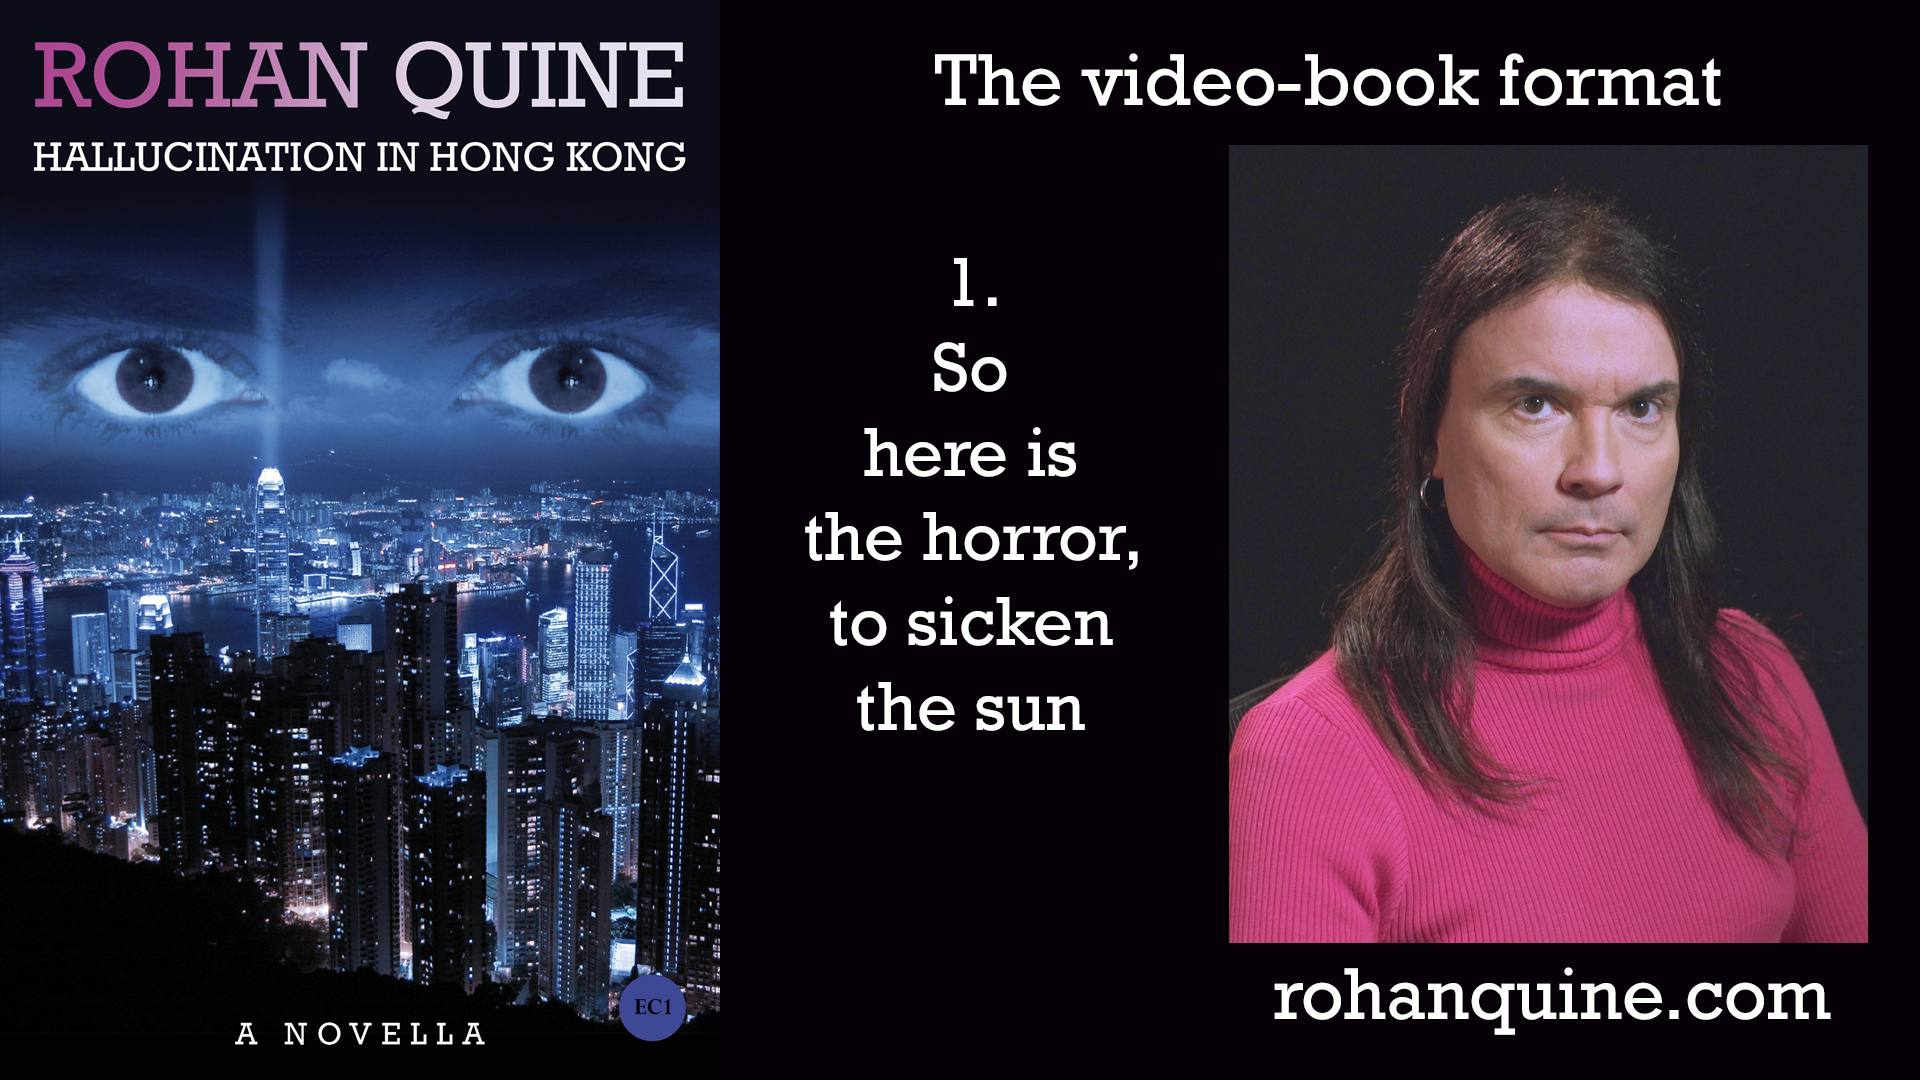 HALLUCINATION IN HONG KONG by Rohan Quine - video-book format - chapter 1